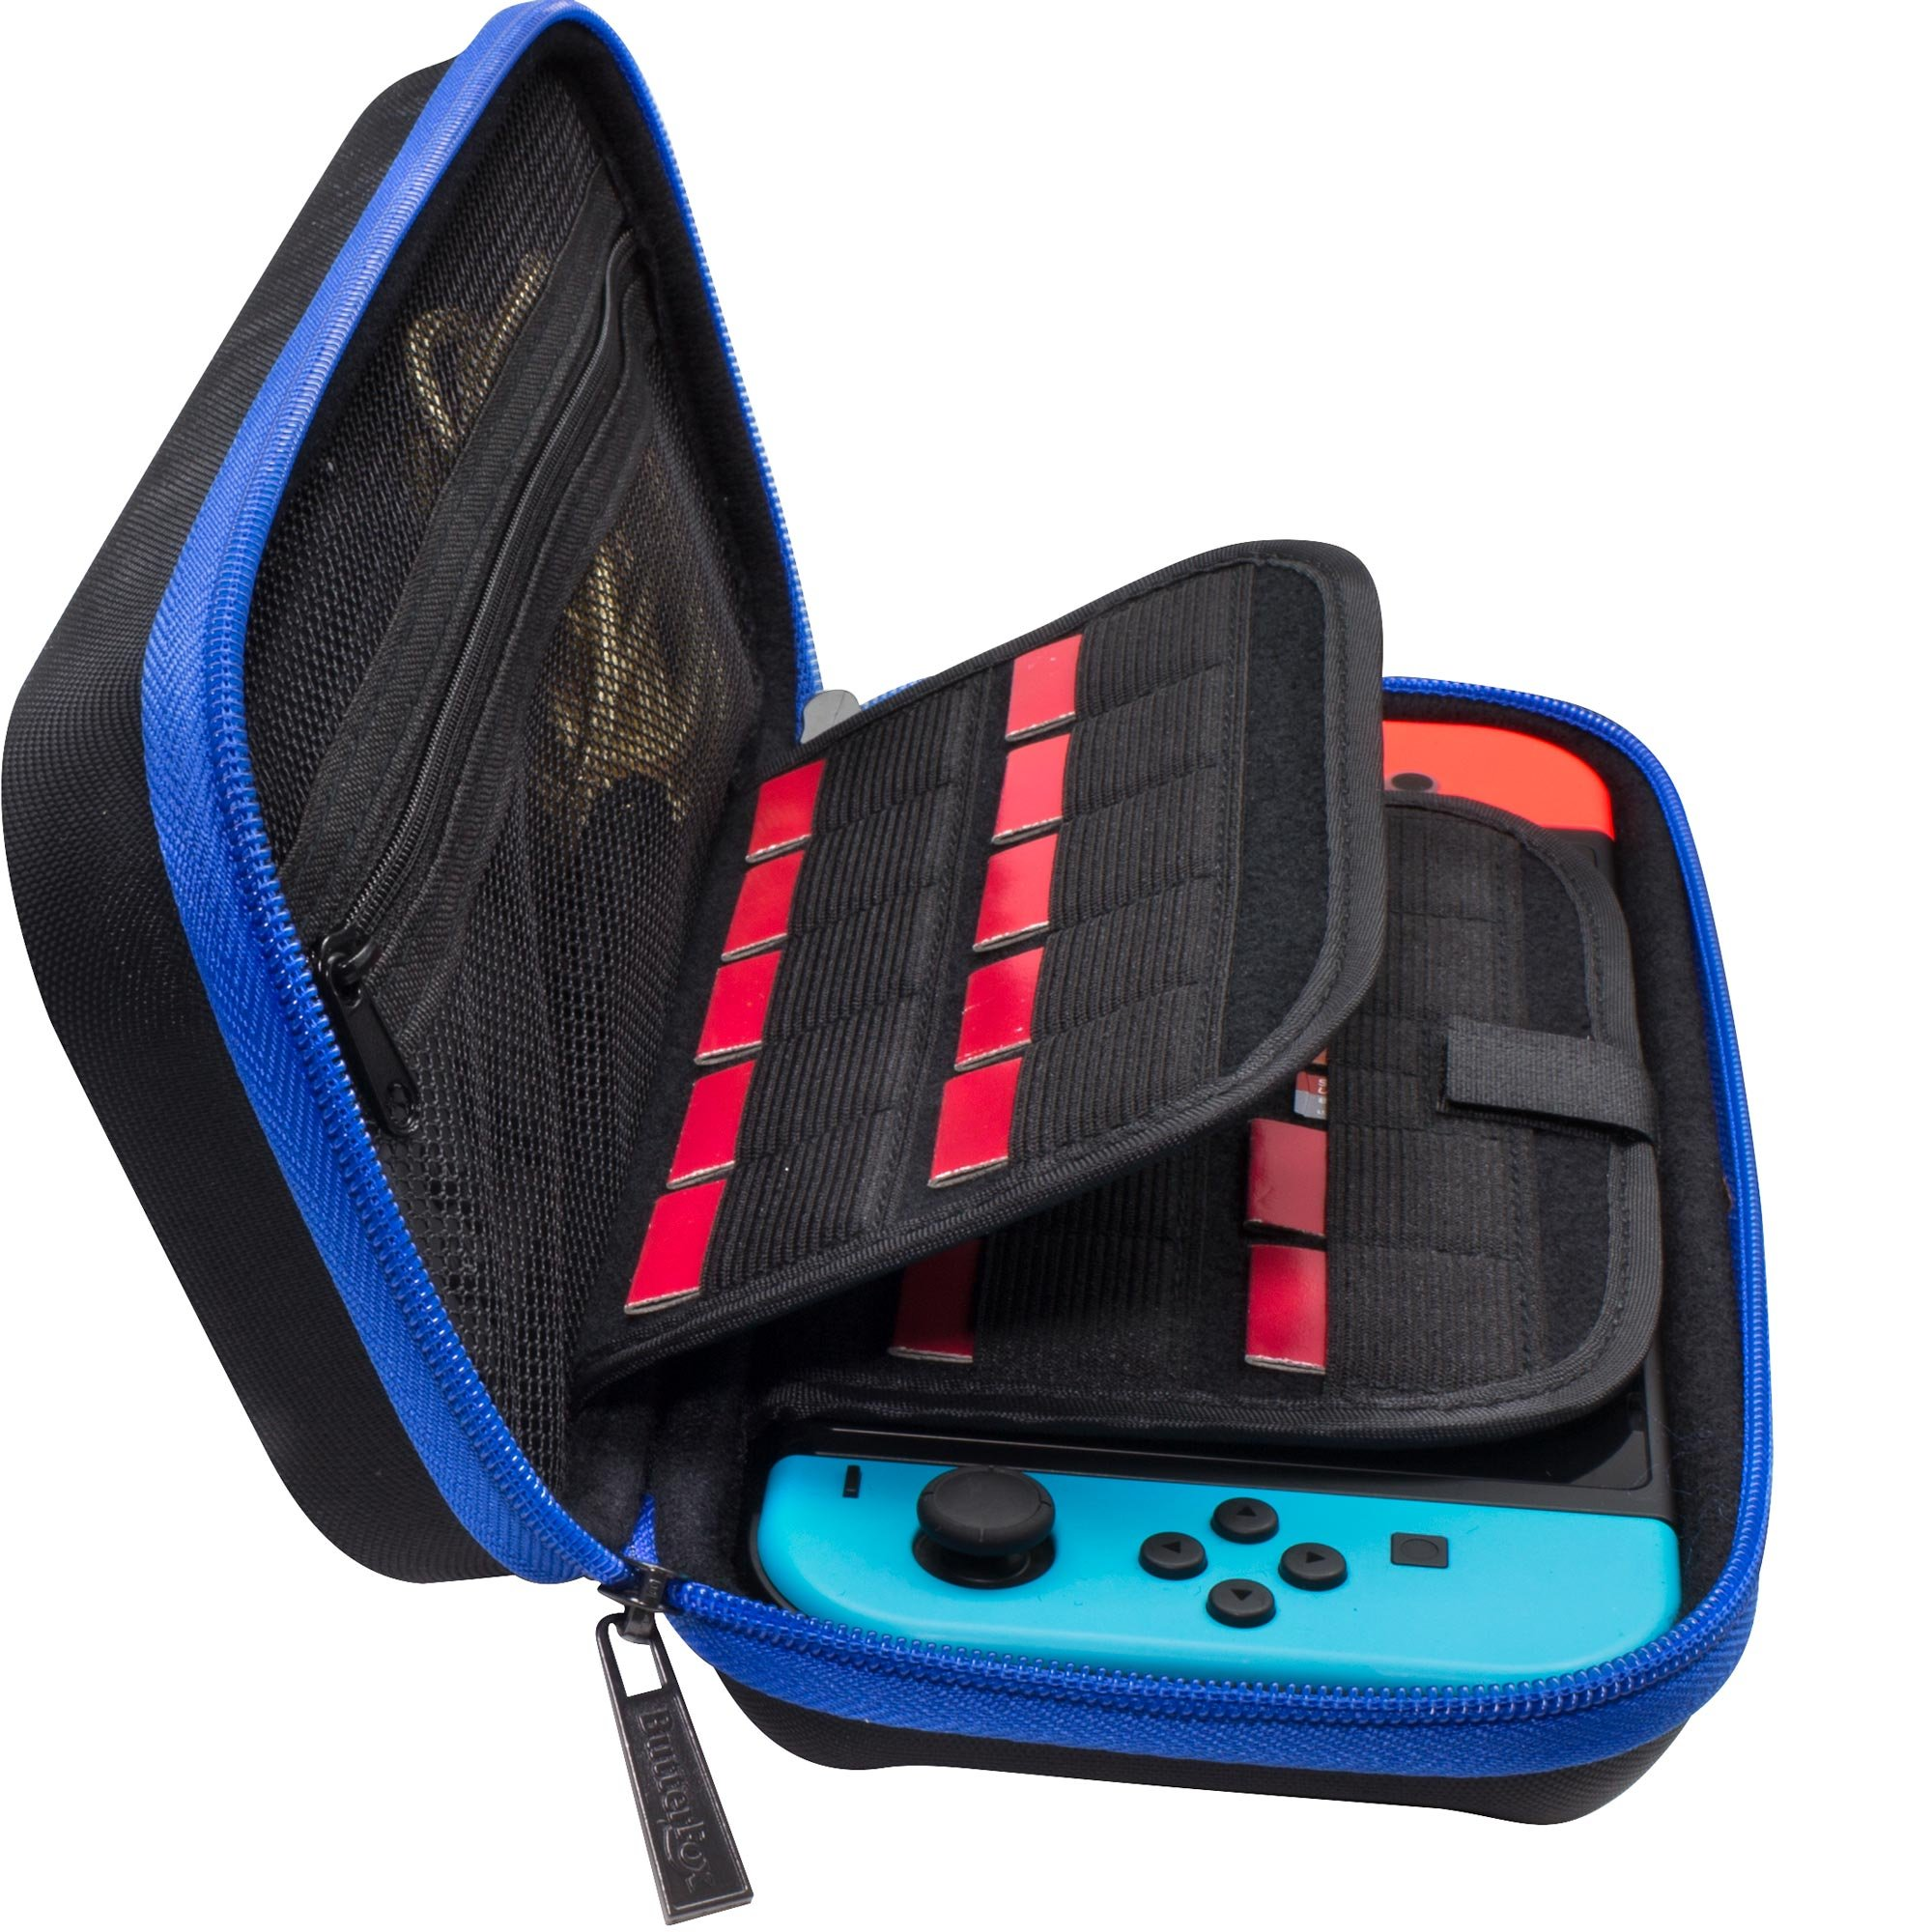 [Updated] ButterFox Carrying Case for Nintendo Switch, 19 Game Card Holders and Large Accessories Pouch - Blue/Black